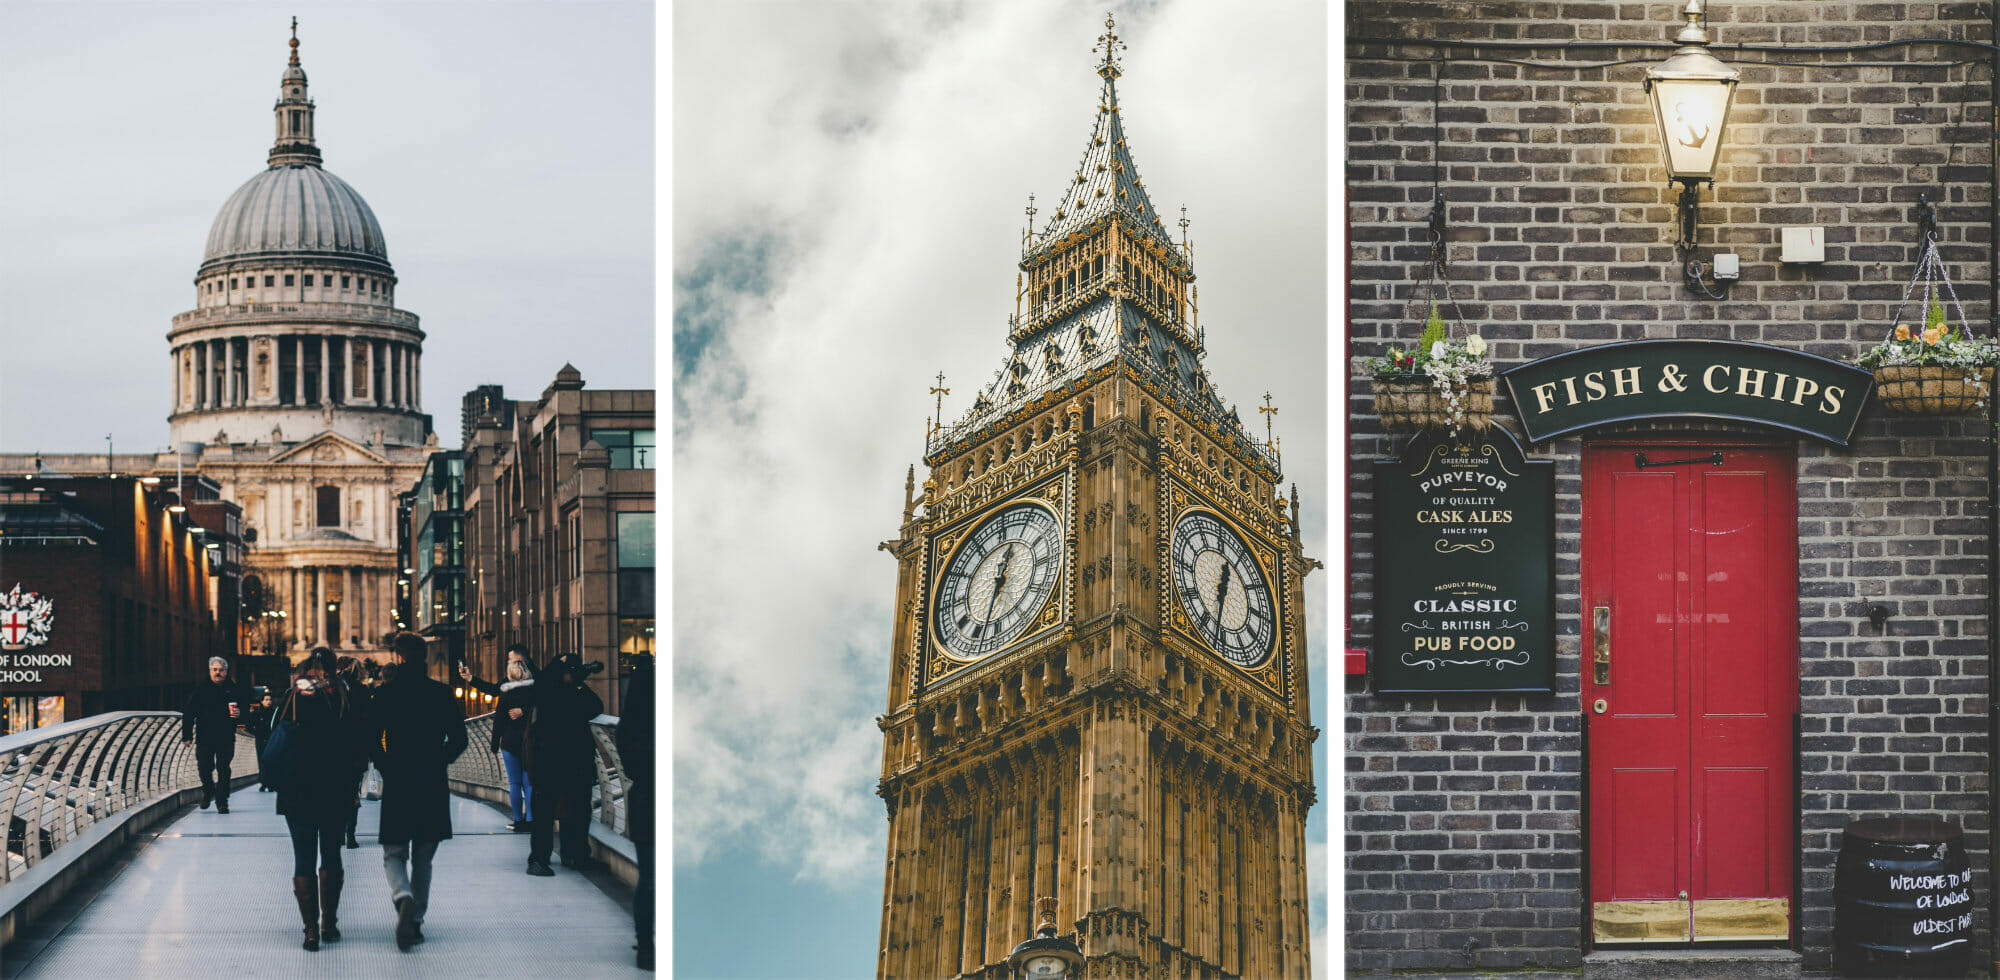 71+ Best Things to Do in London: the Ultimate List via @girlsgonelondon